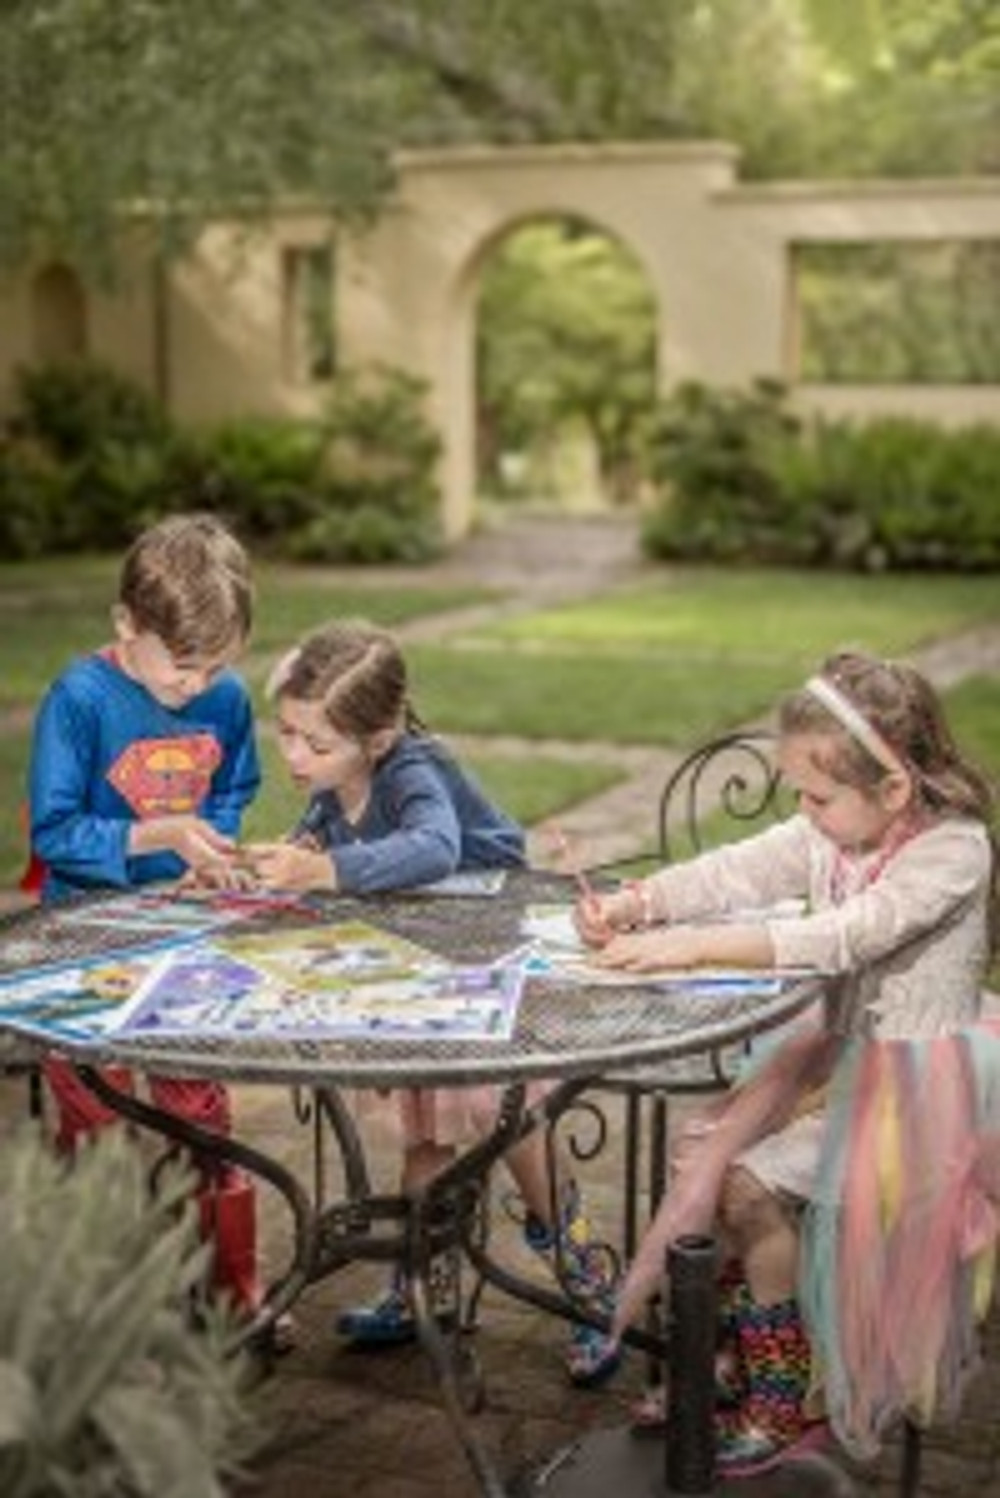 Henry Laurie, Georgia Anicic and Jessica Nutt enjoy doing some colouring in